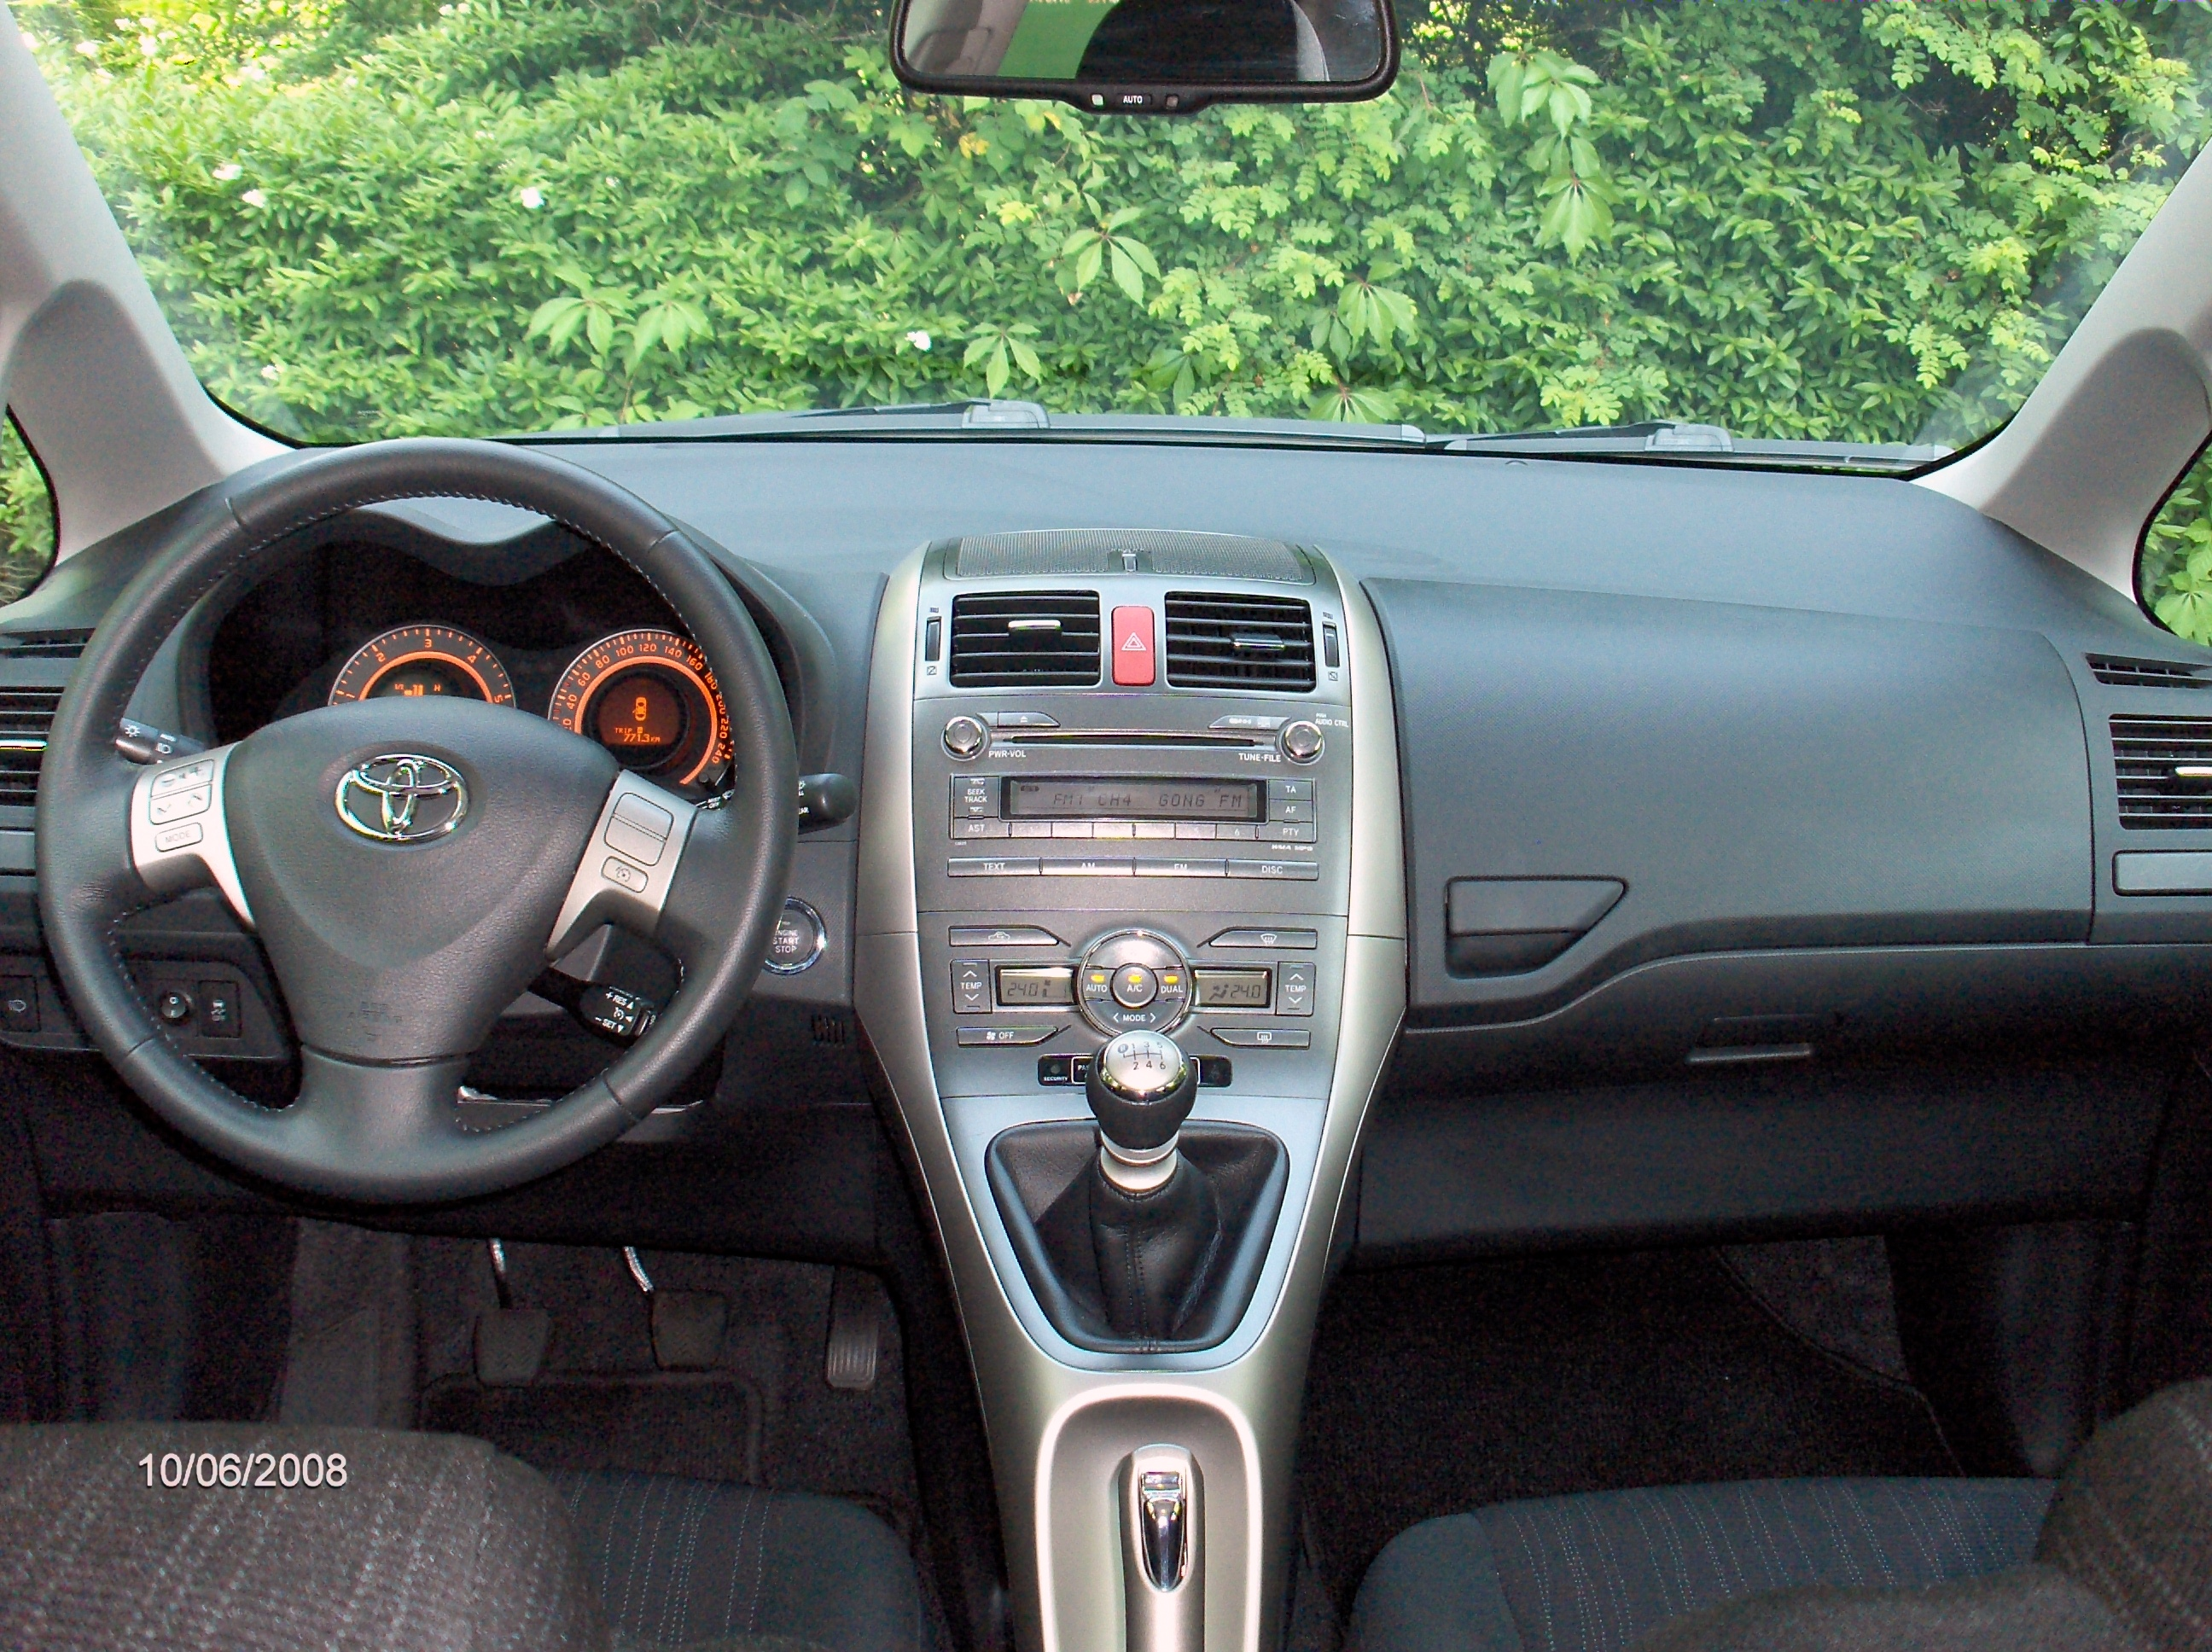 datei toyota auris interieur 1 jpg wikipedia. Black Bedroom Furniture Sets. Home Design Ideas